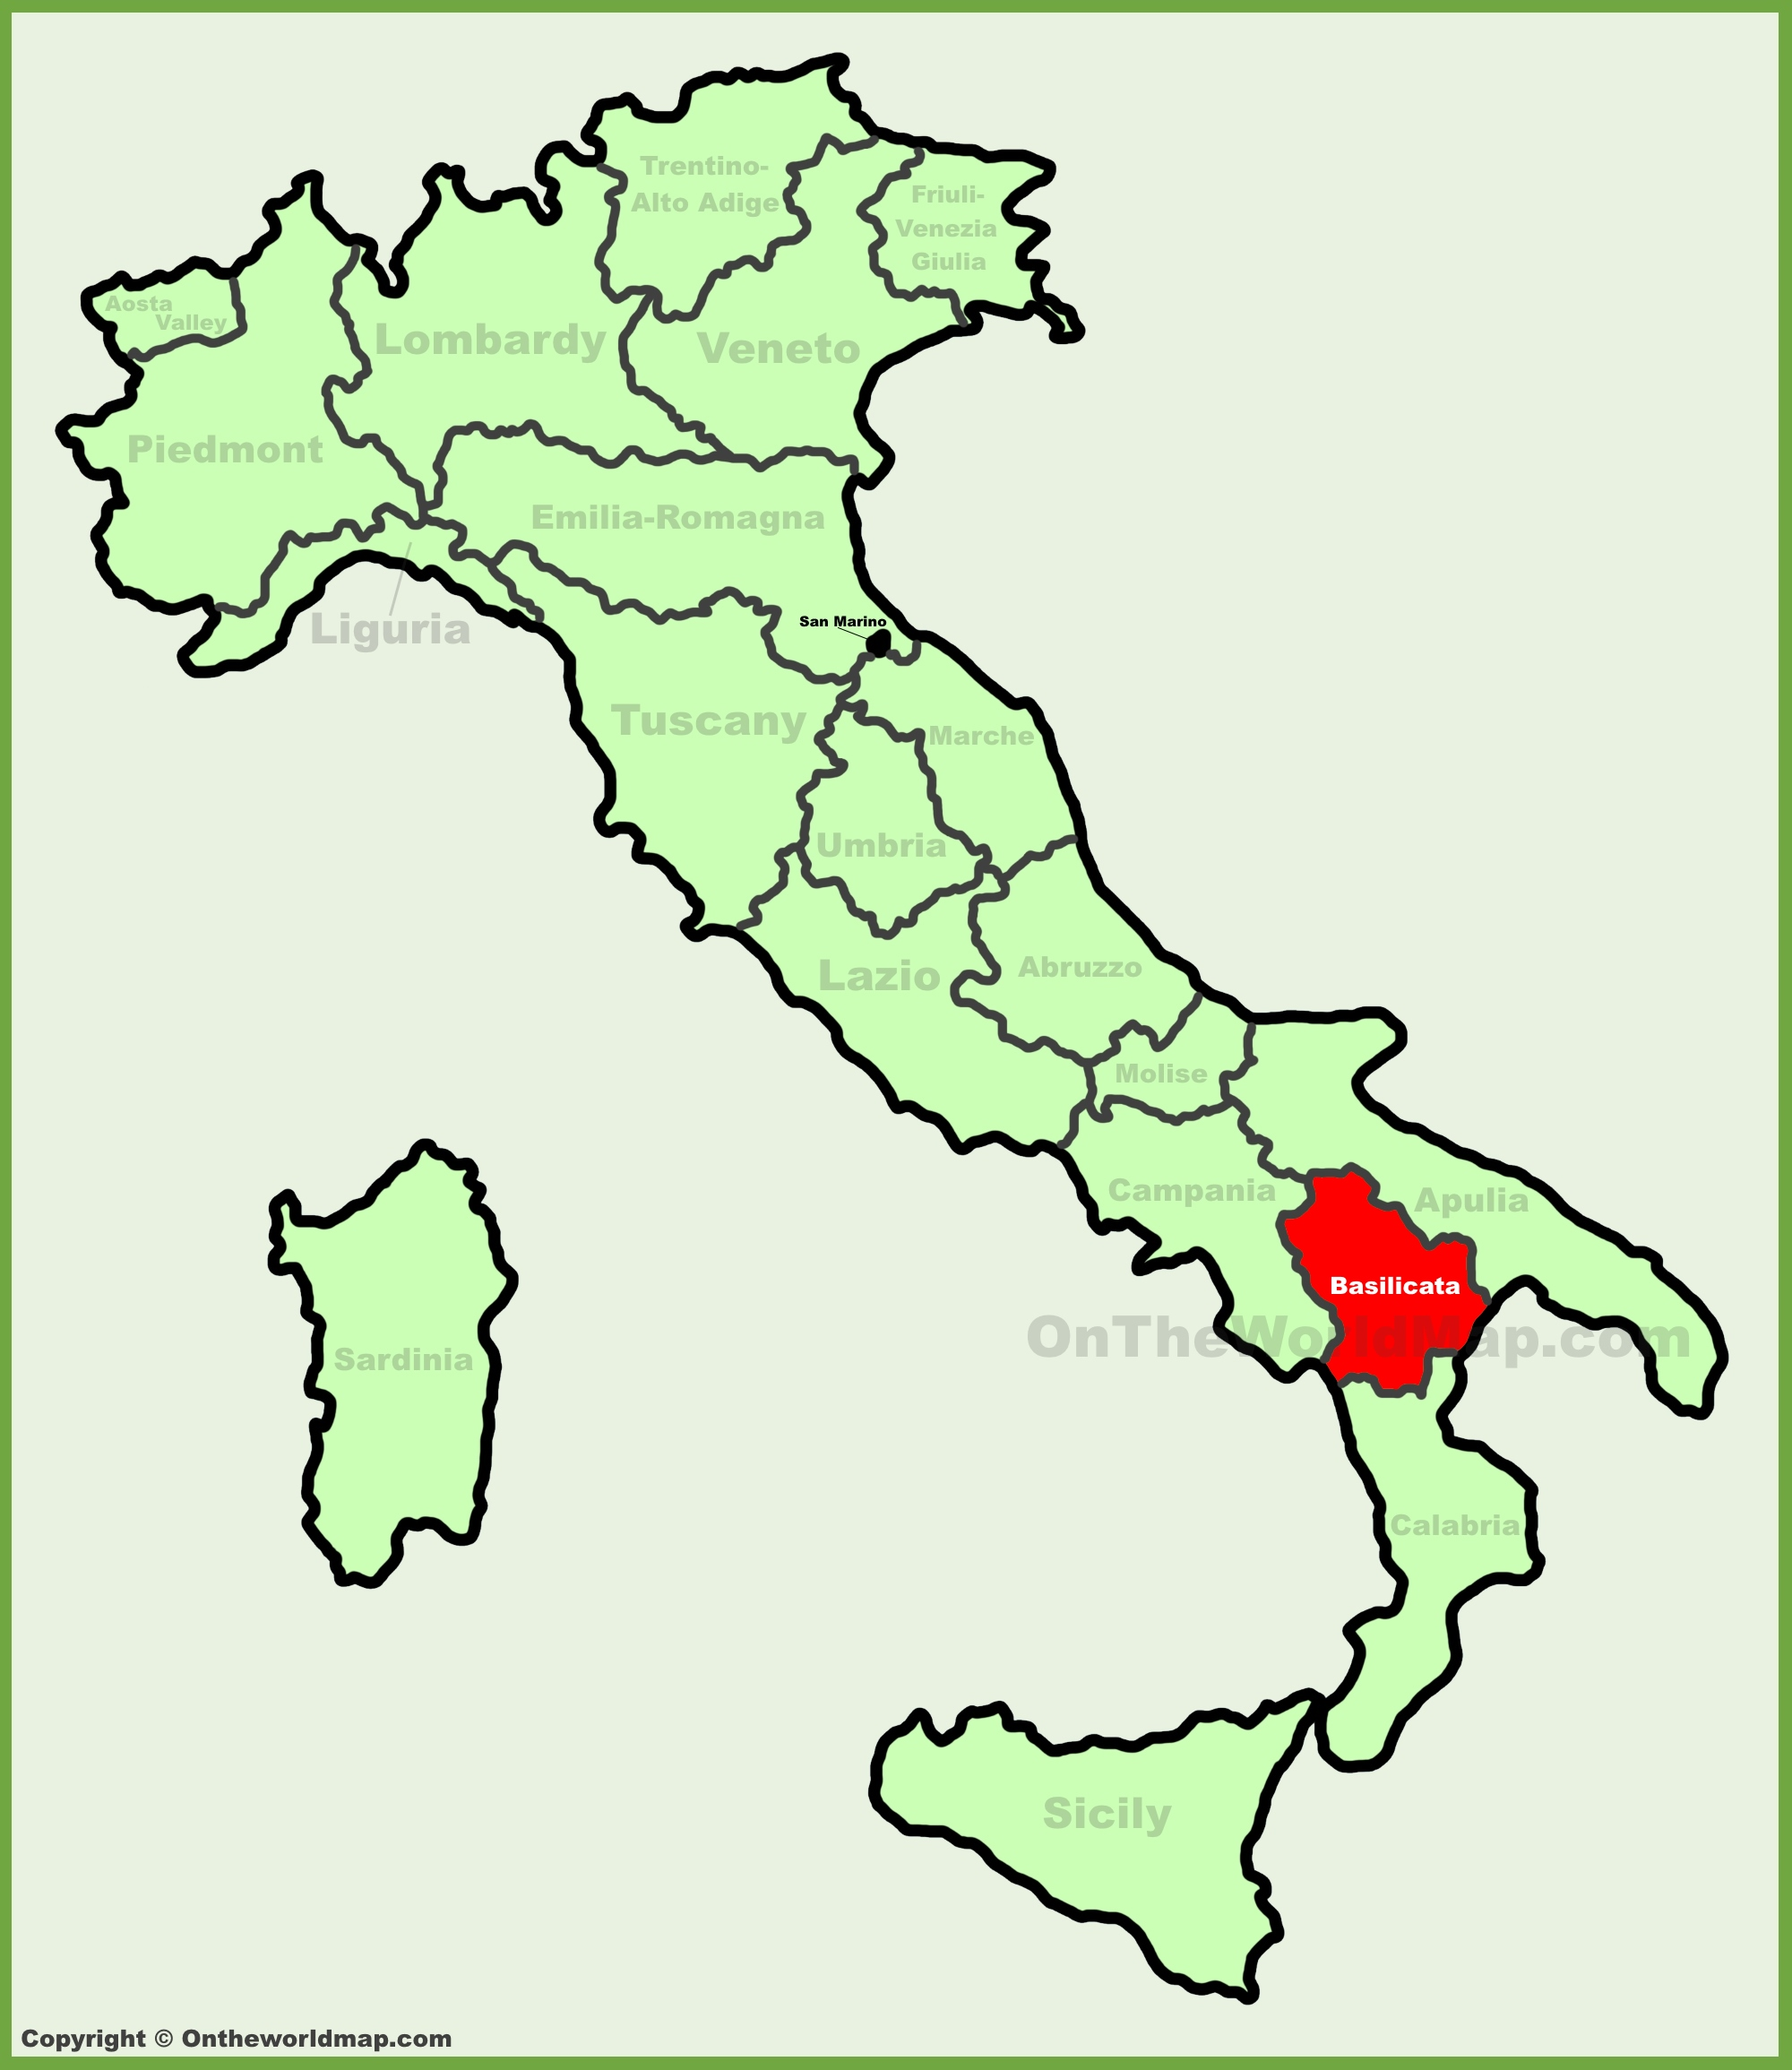 Basilicata location on the Italy map